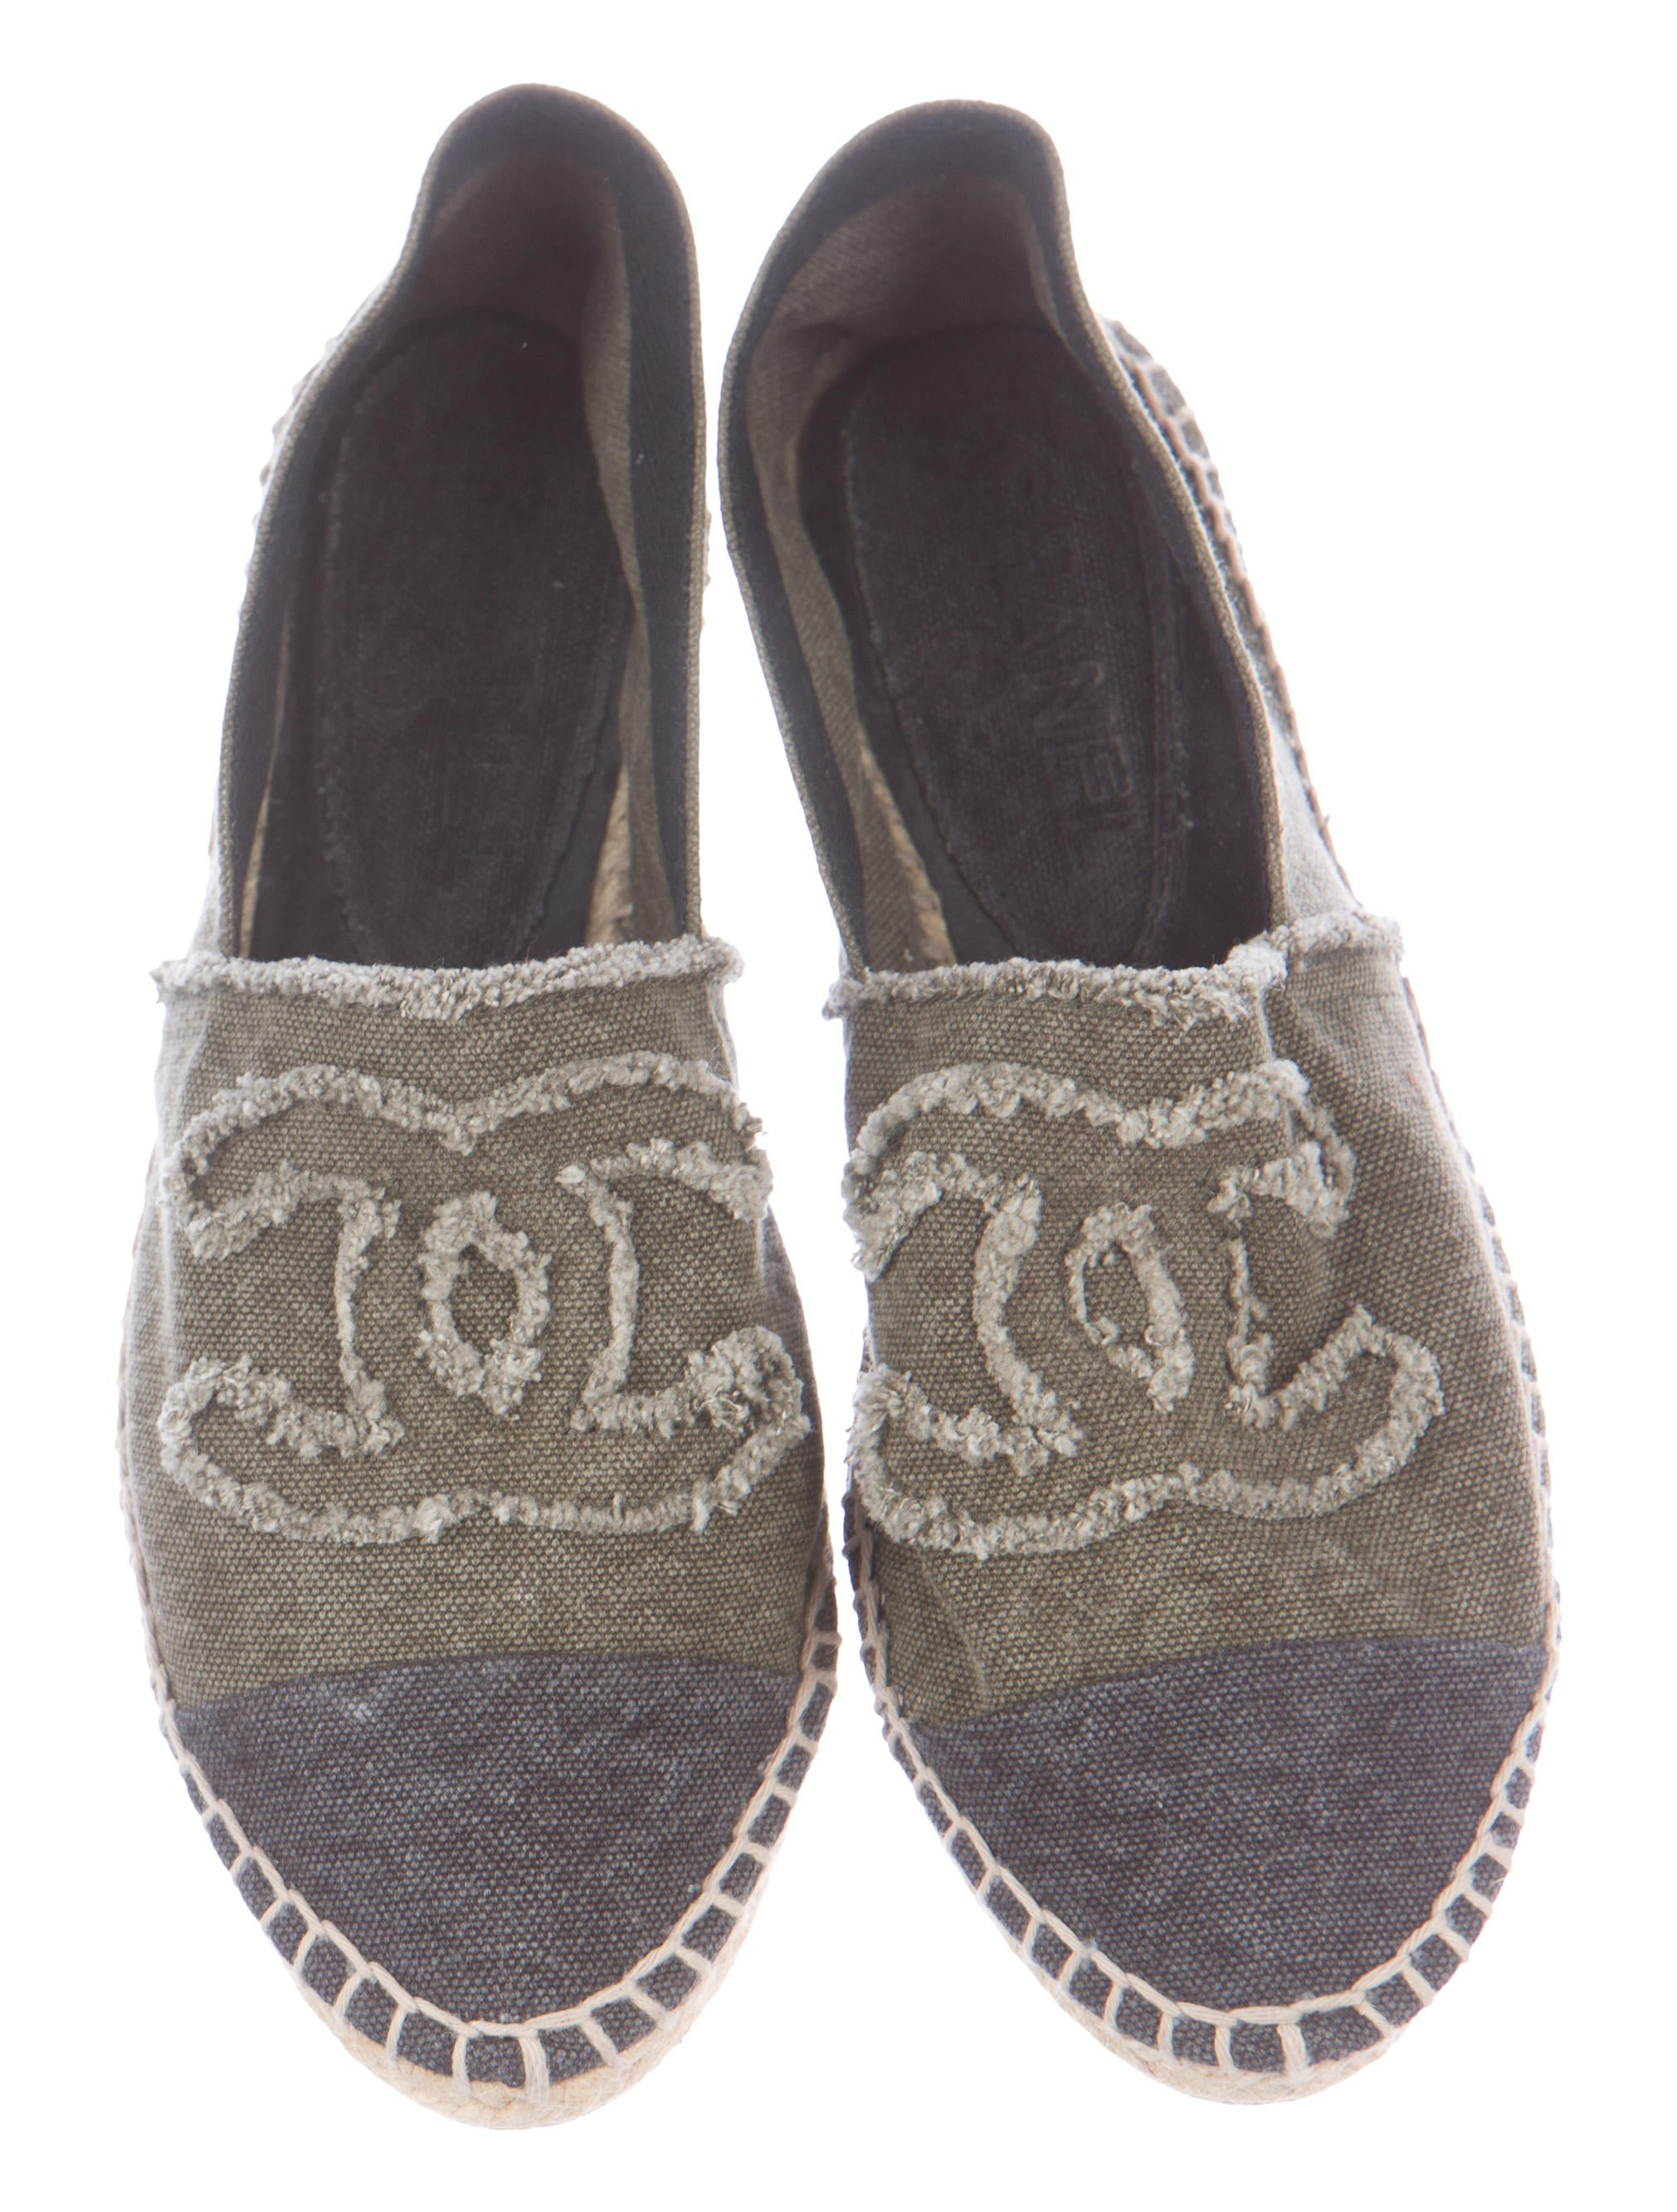 chanel canvas espadrille flats shoes cha131217 the